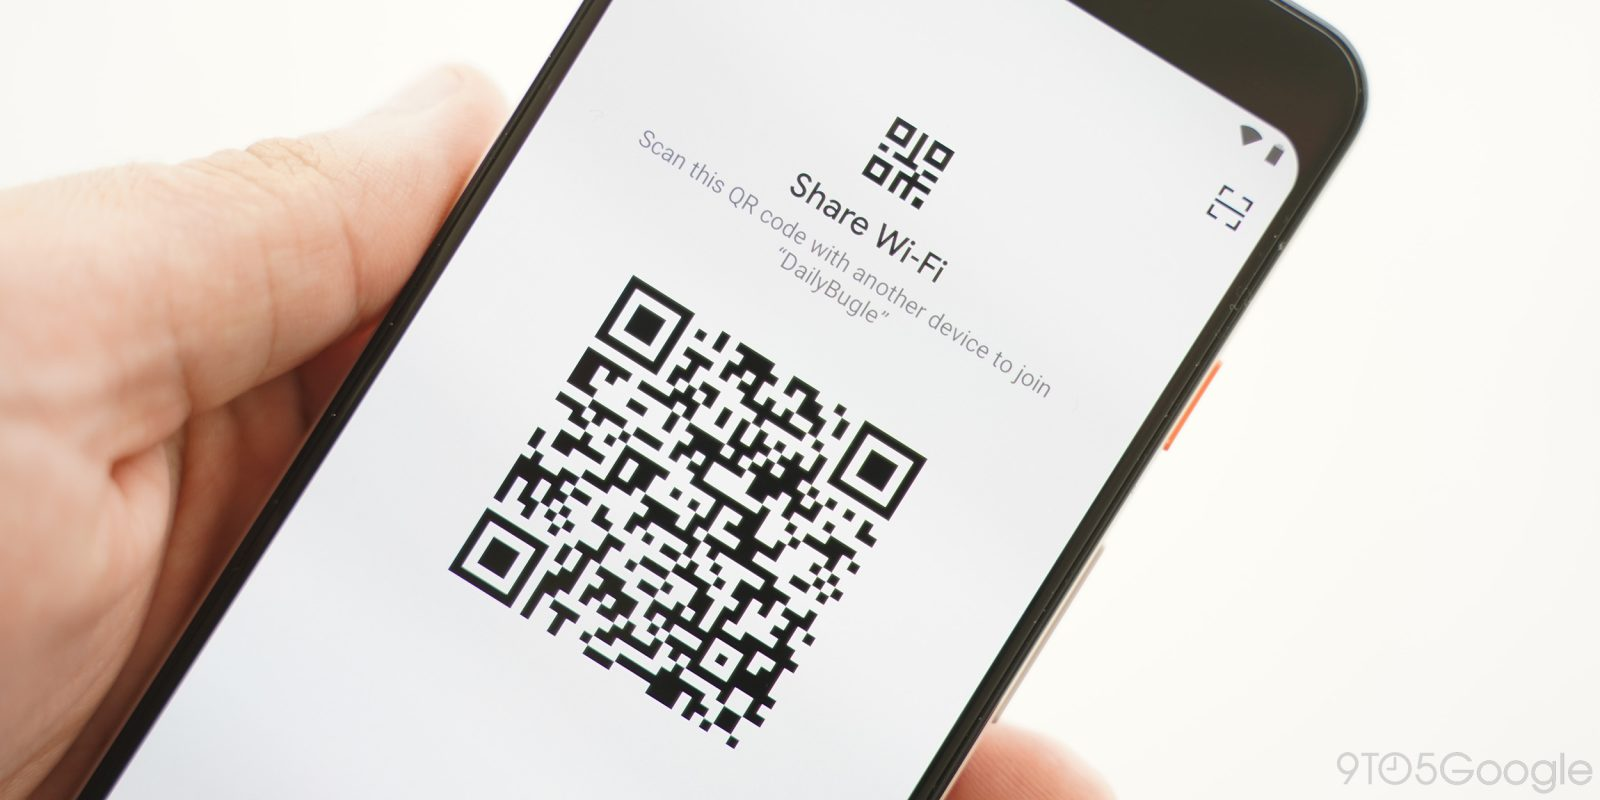 Android Q supports 'Wi-Fi Easy Connect' w/ QR, NFC, more